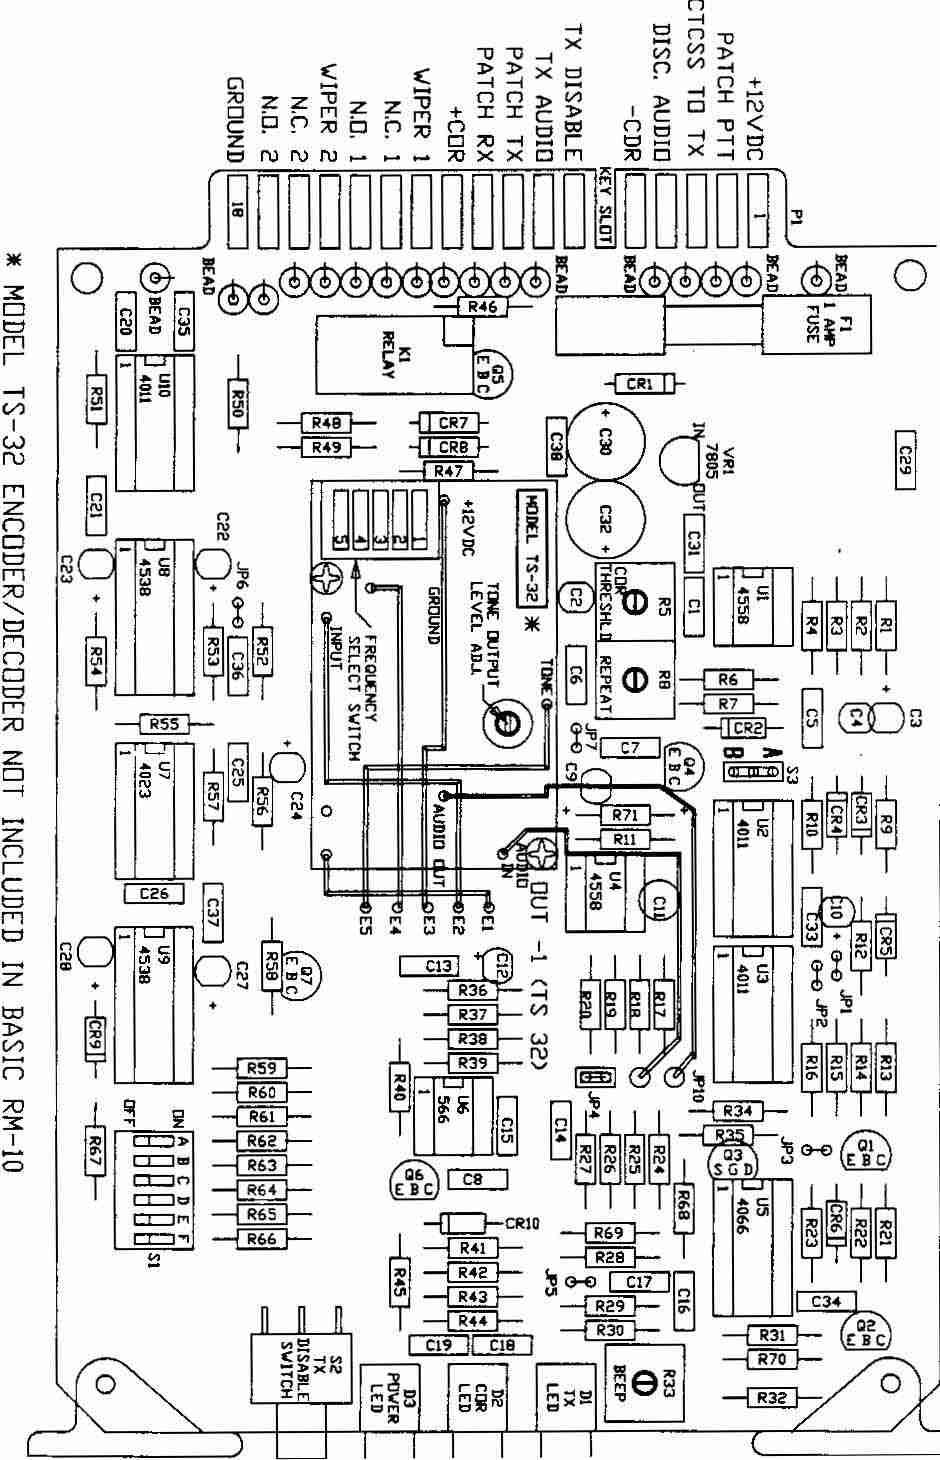 Whelen Power Supply Wiring Diagram : Whelen replacement parts wiring harness get free image